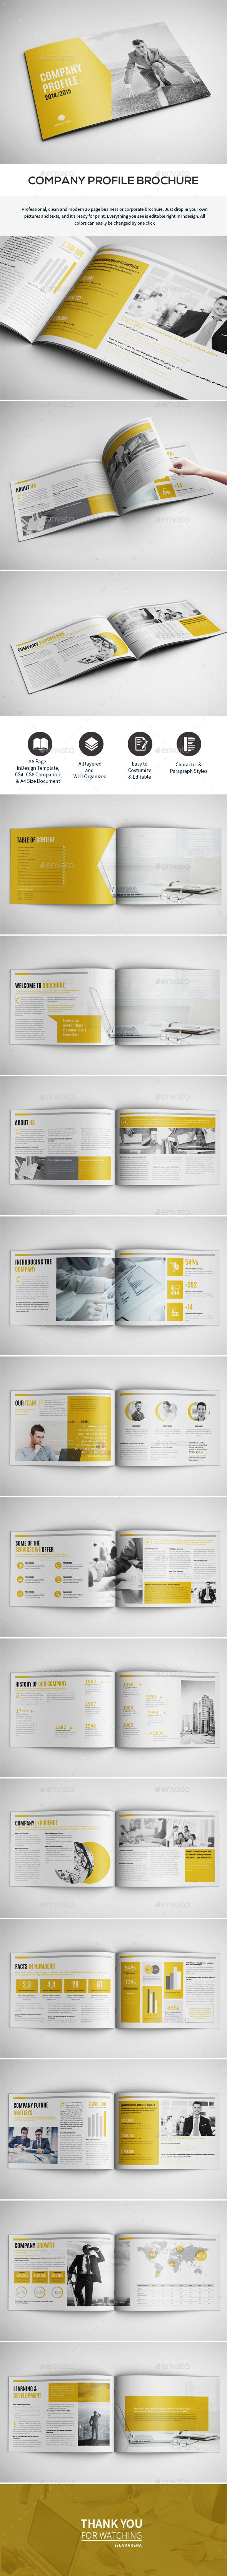 Company Profile - InDesign Template • Only available here ➝ https://graphicriver.net/item/company-profile/16928606?ref=pxcr